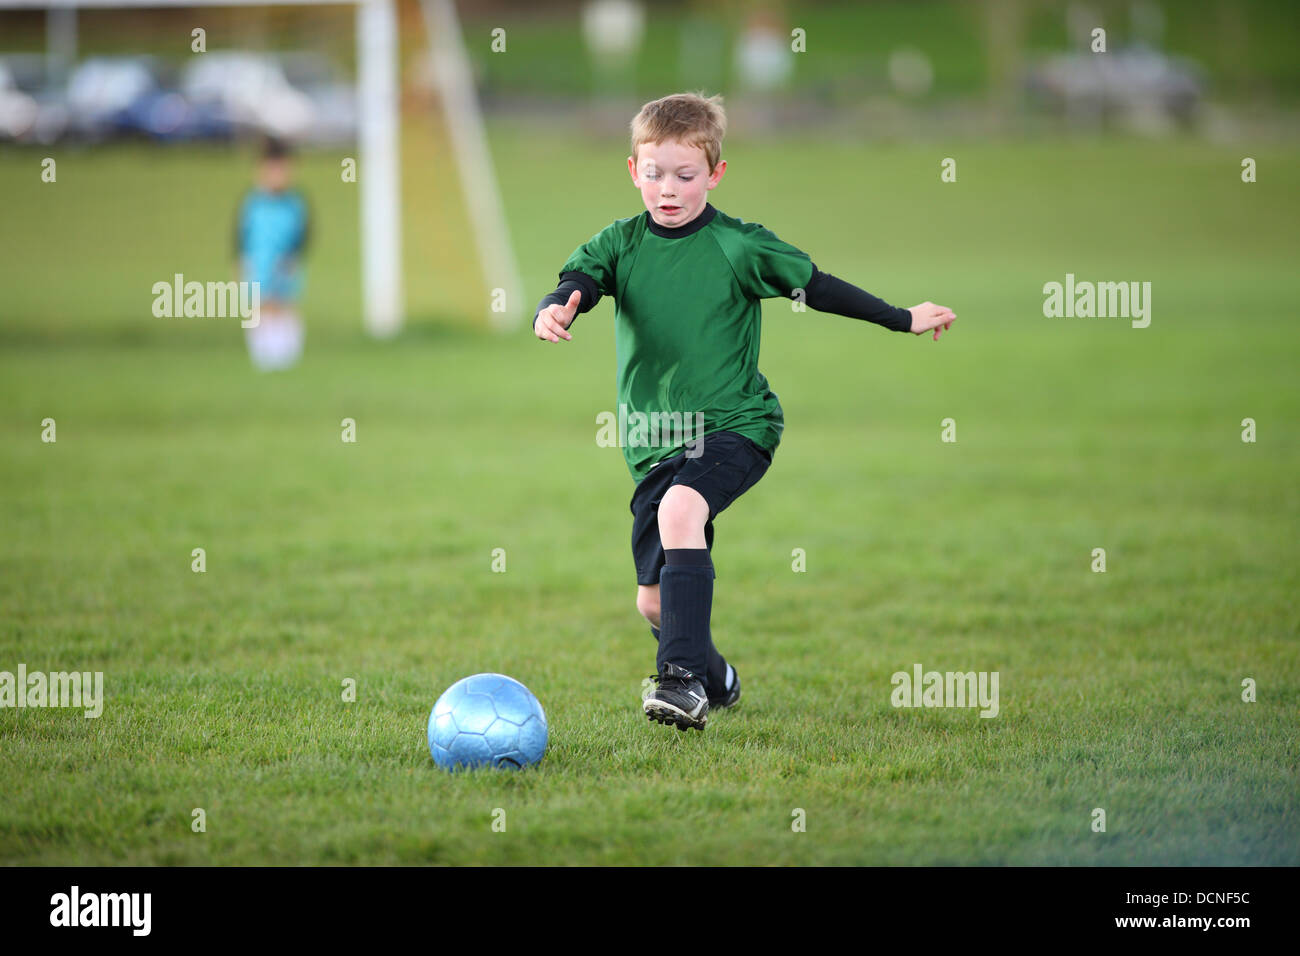 Young boy kicking soccer ball - Stock Image